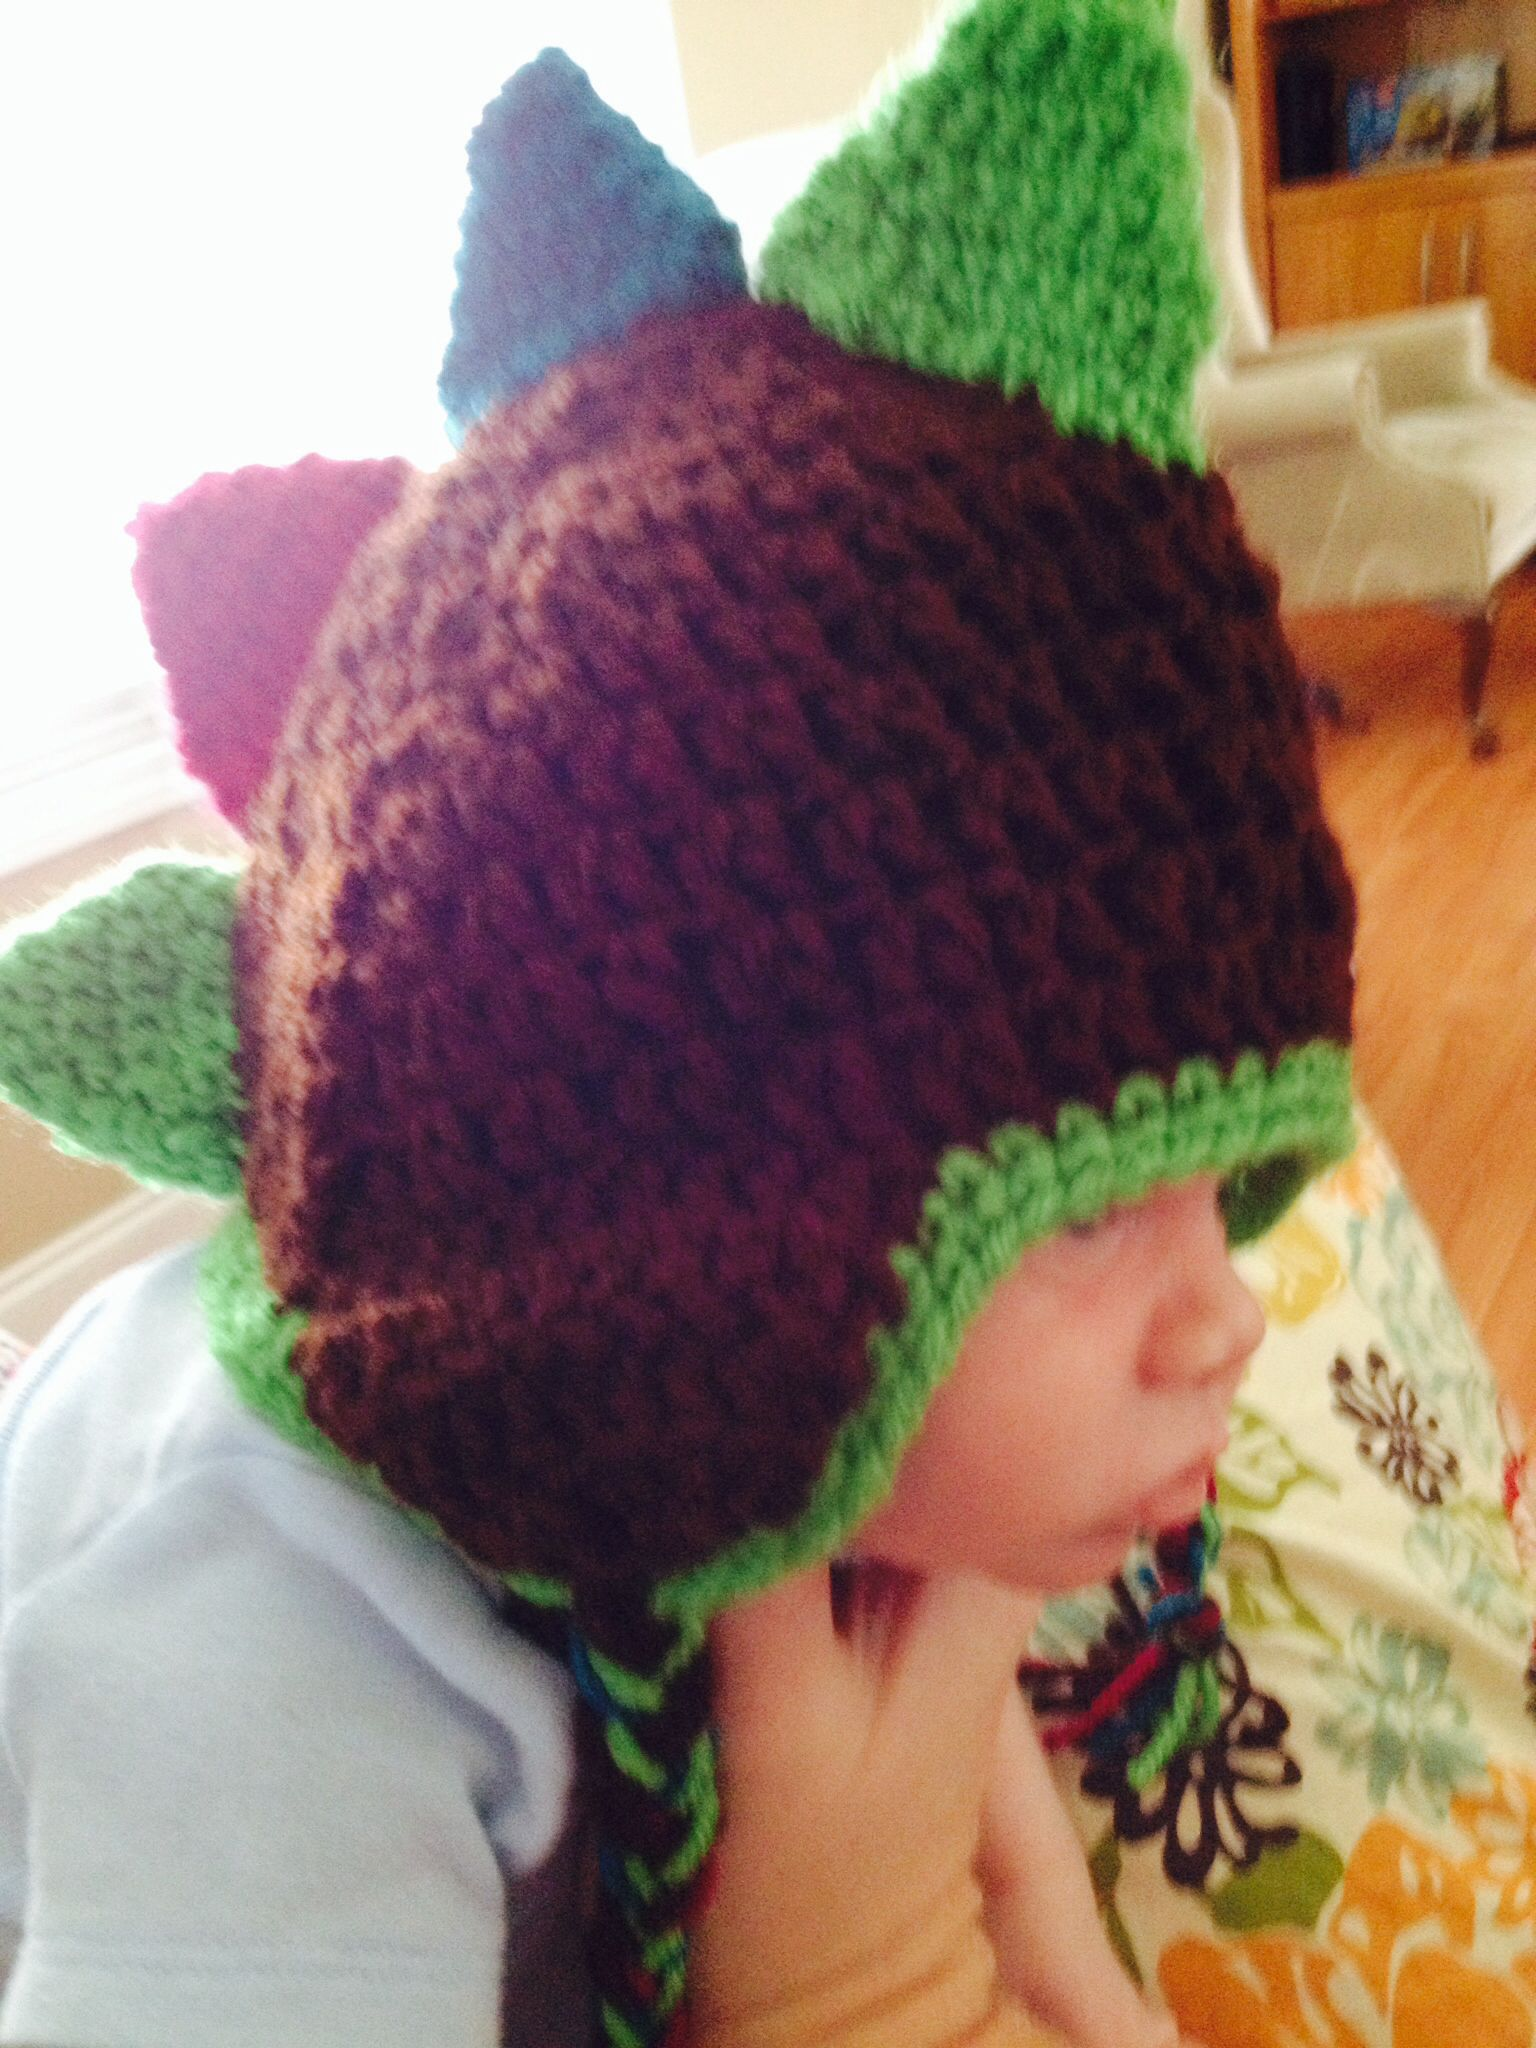 Crocheted dinosaur hat my finished crochet projects pinterest